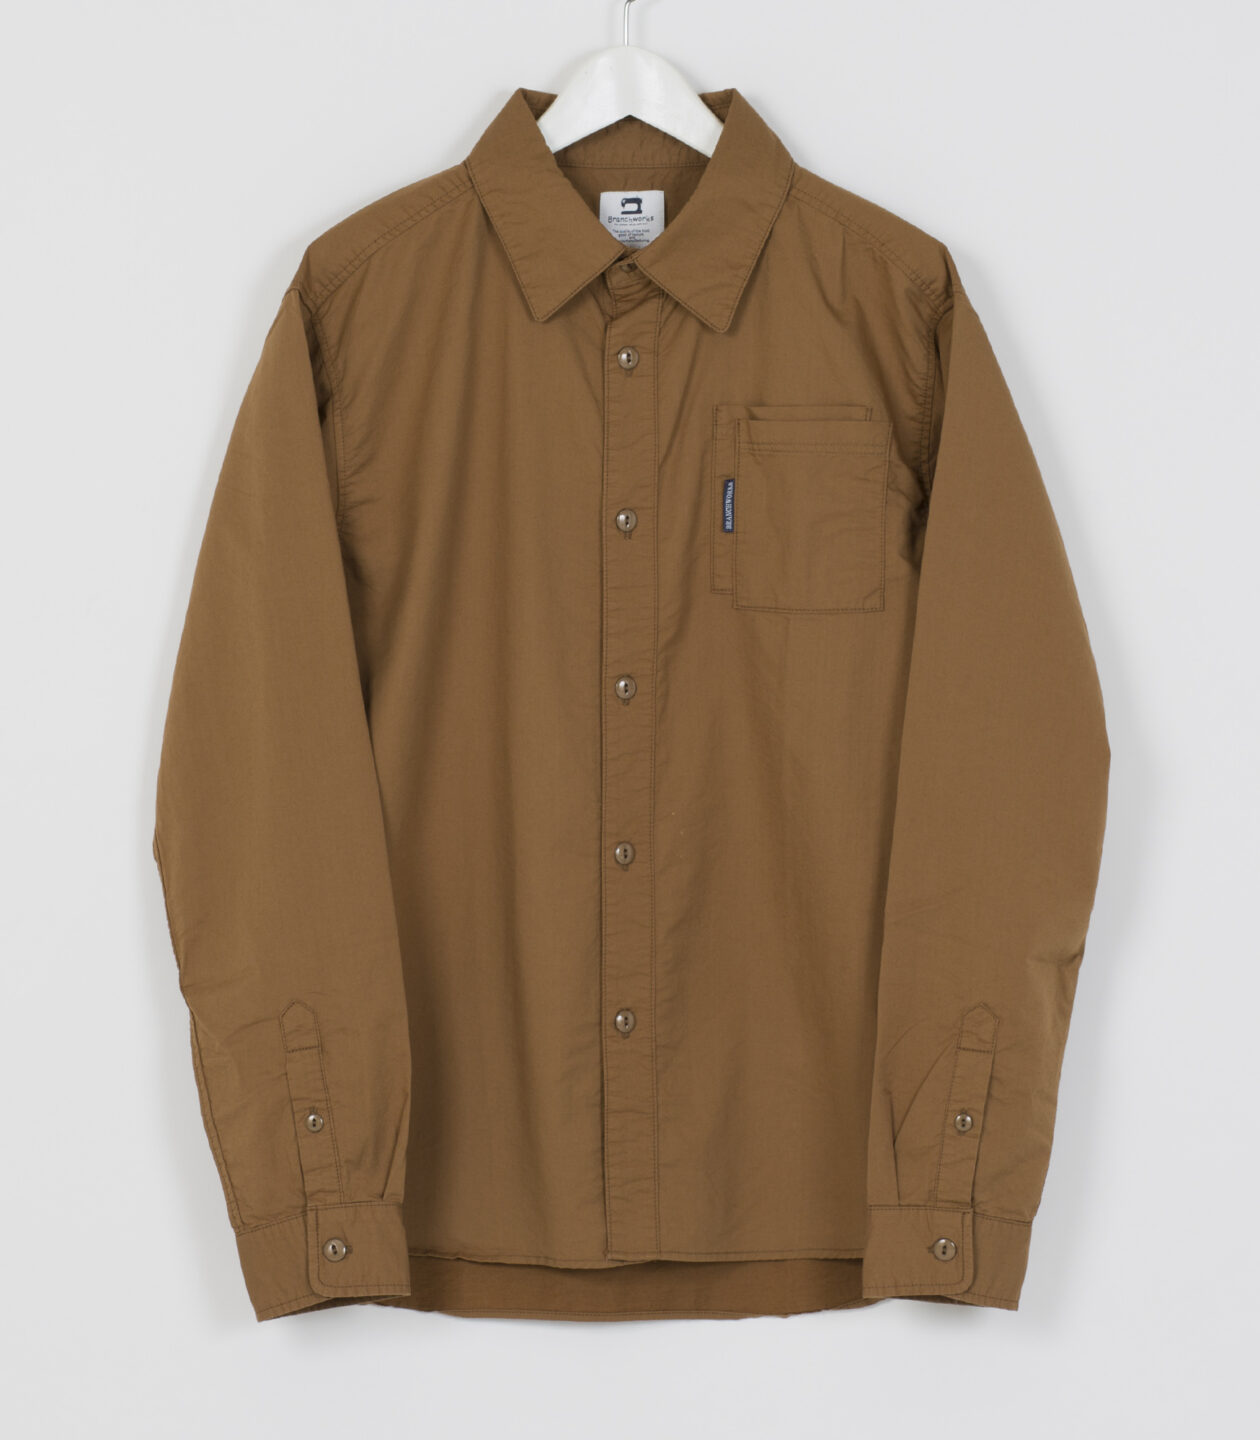 DY1-3002 Brown